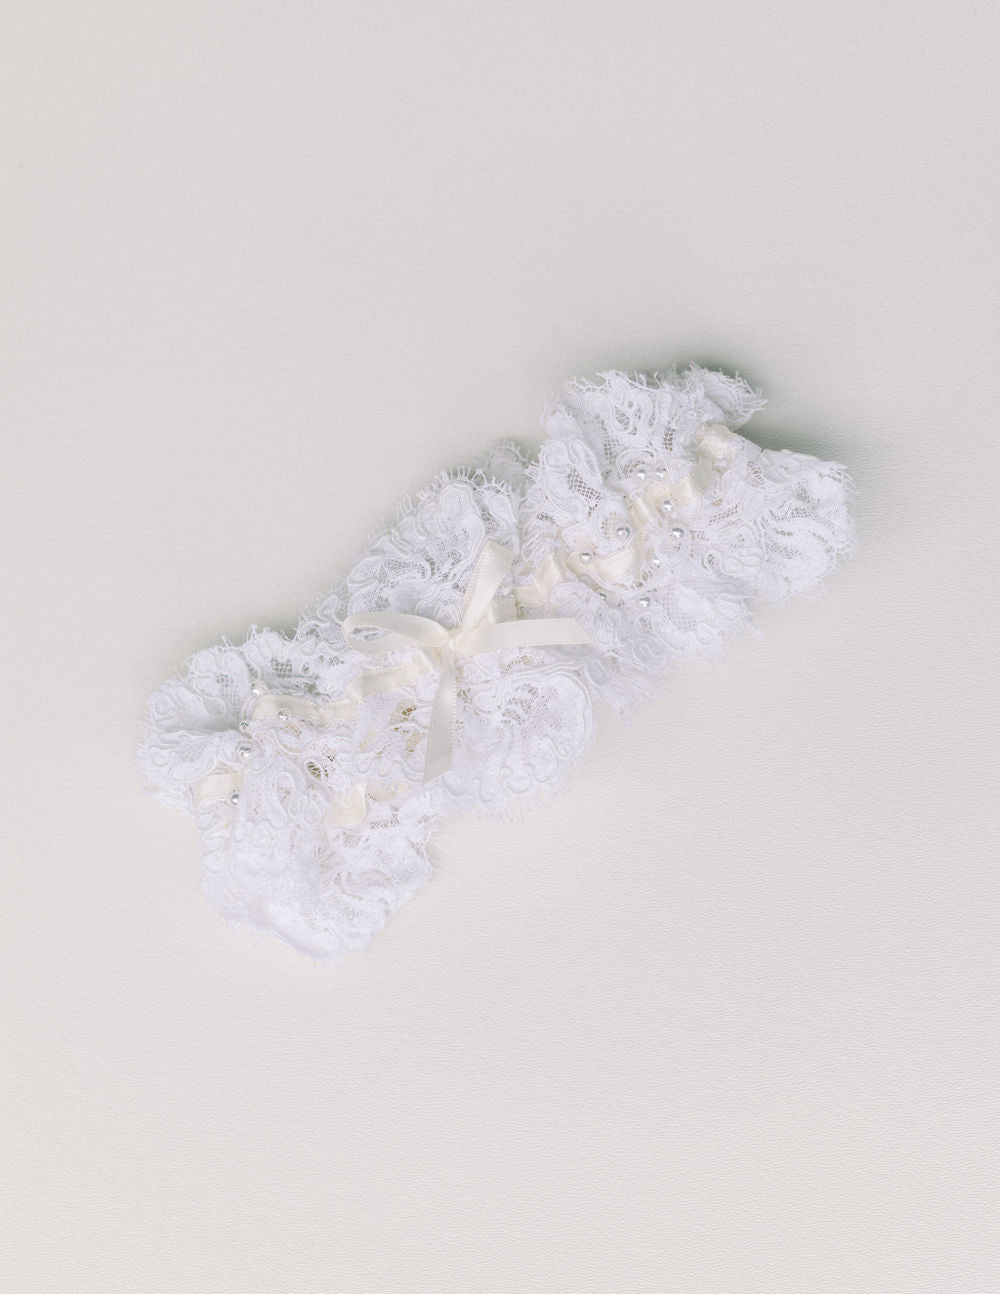 wedding garter heirloom handmade with mother's wedding dress lace and pearls by The Garter Girl